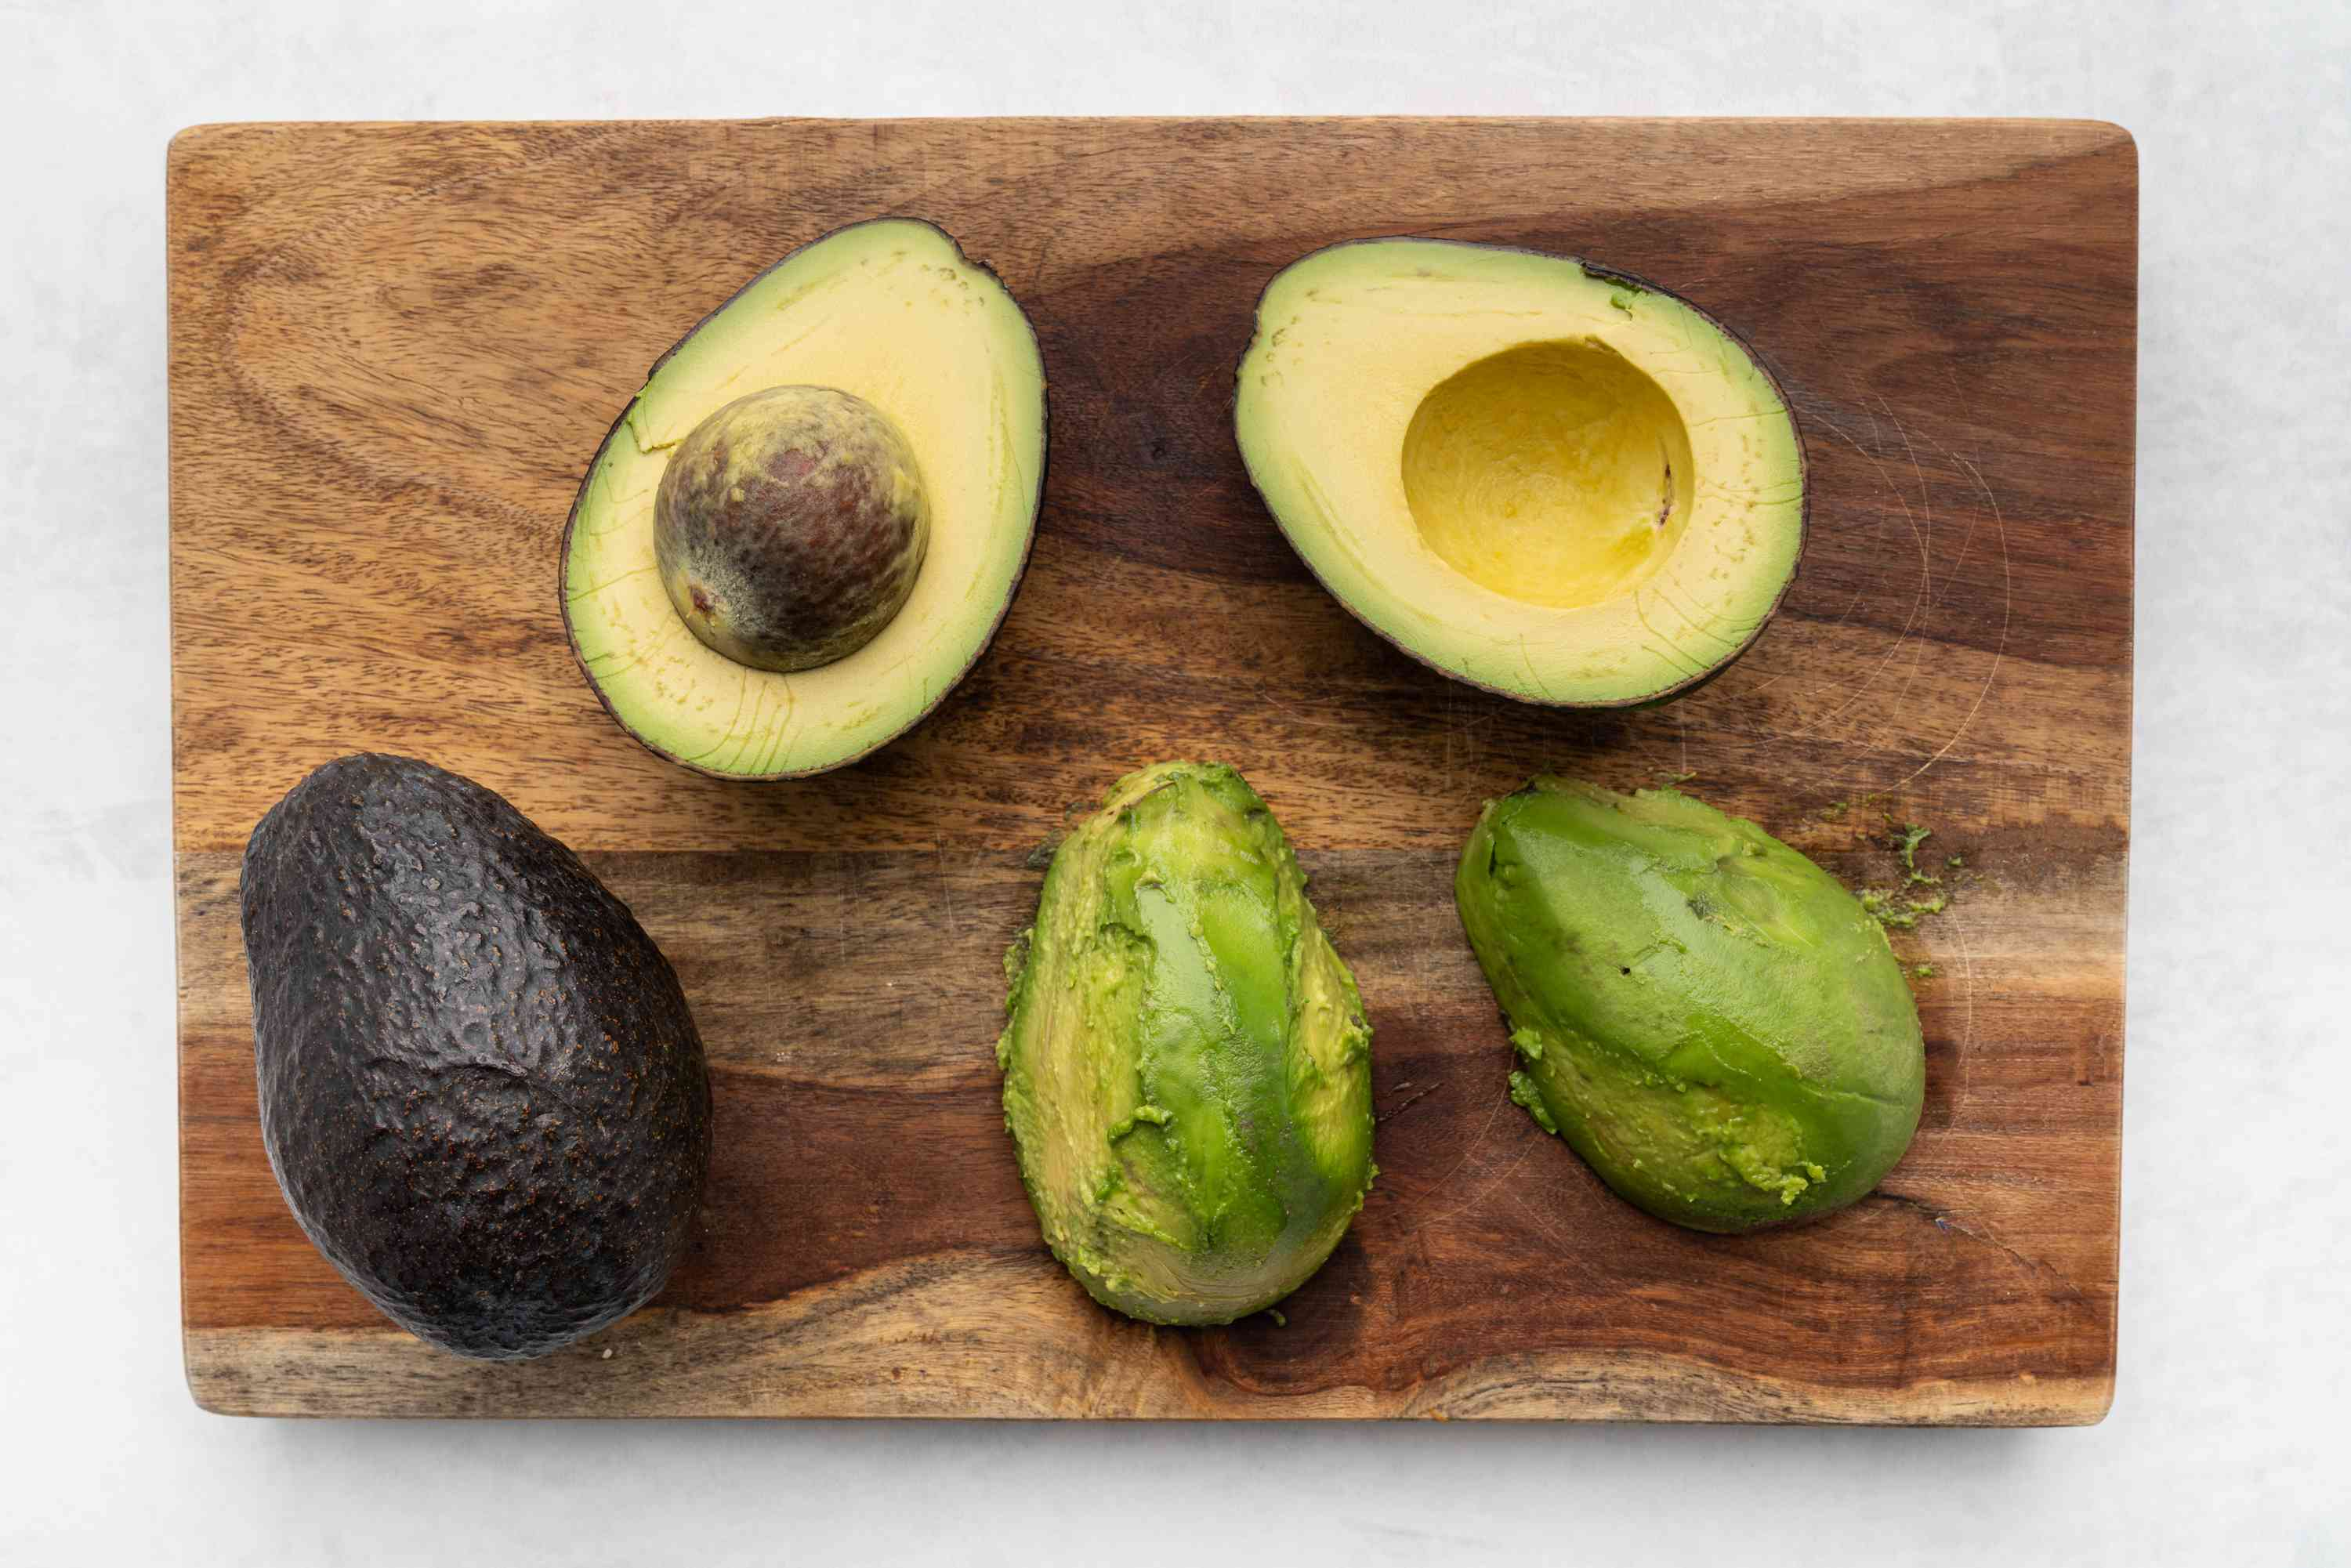 Cut open the avocados and remove the flesh